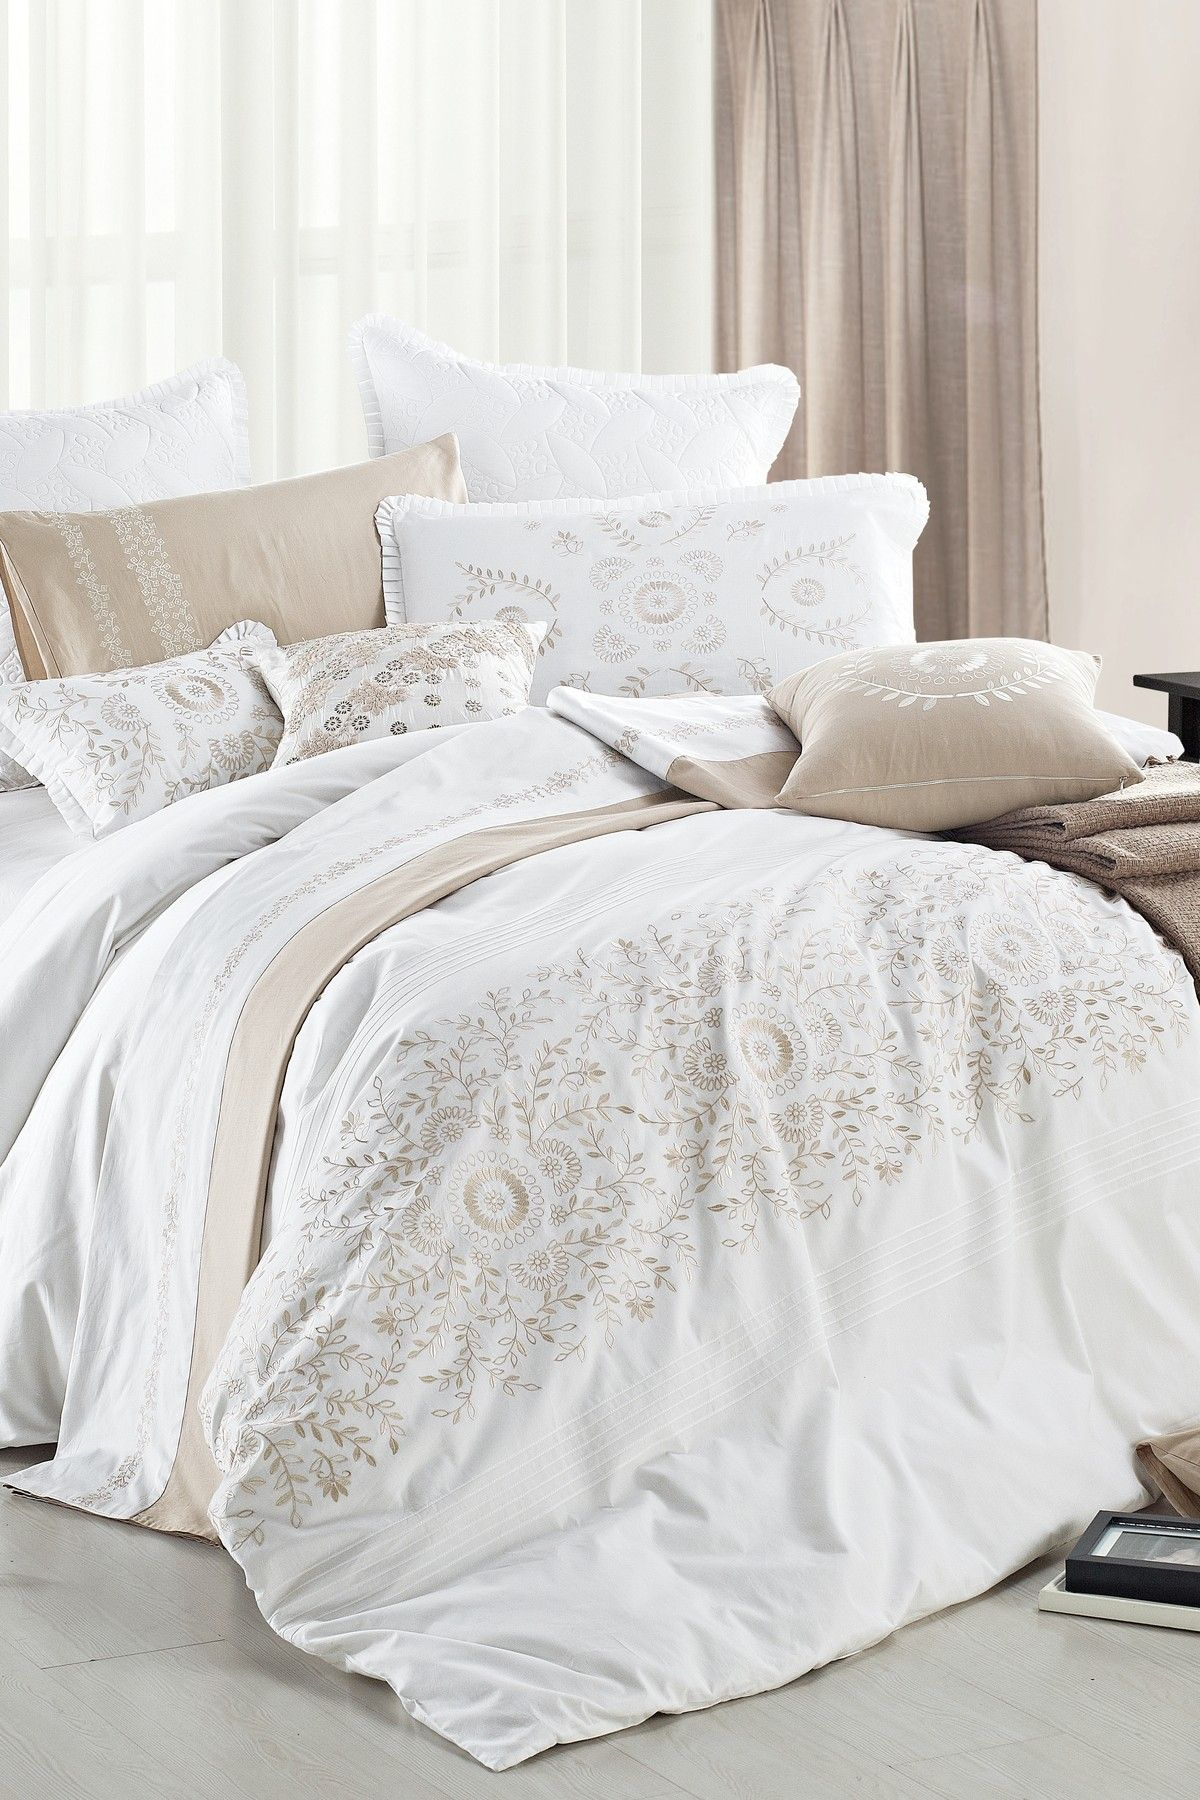 midas duvet set white gold on hautelook home pinterest white and gold bedding duvet. Black Bedroom Furniture Sets. Home Design Ideas